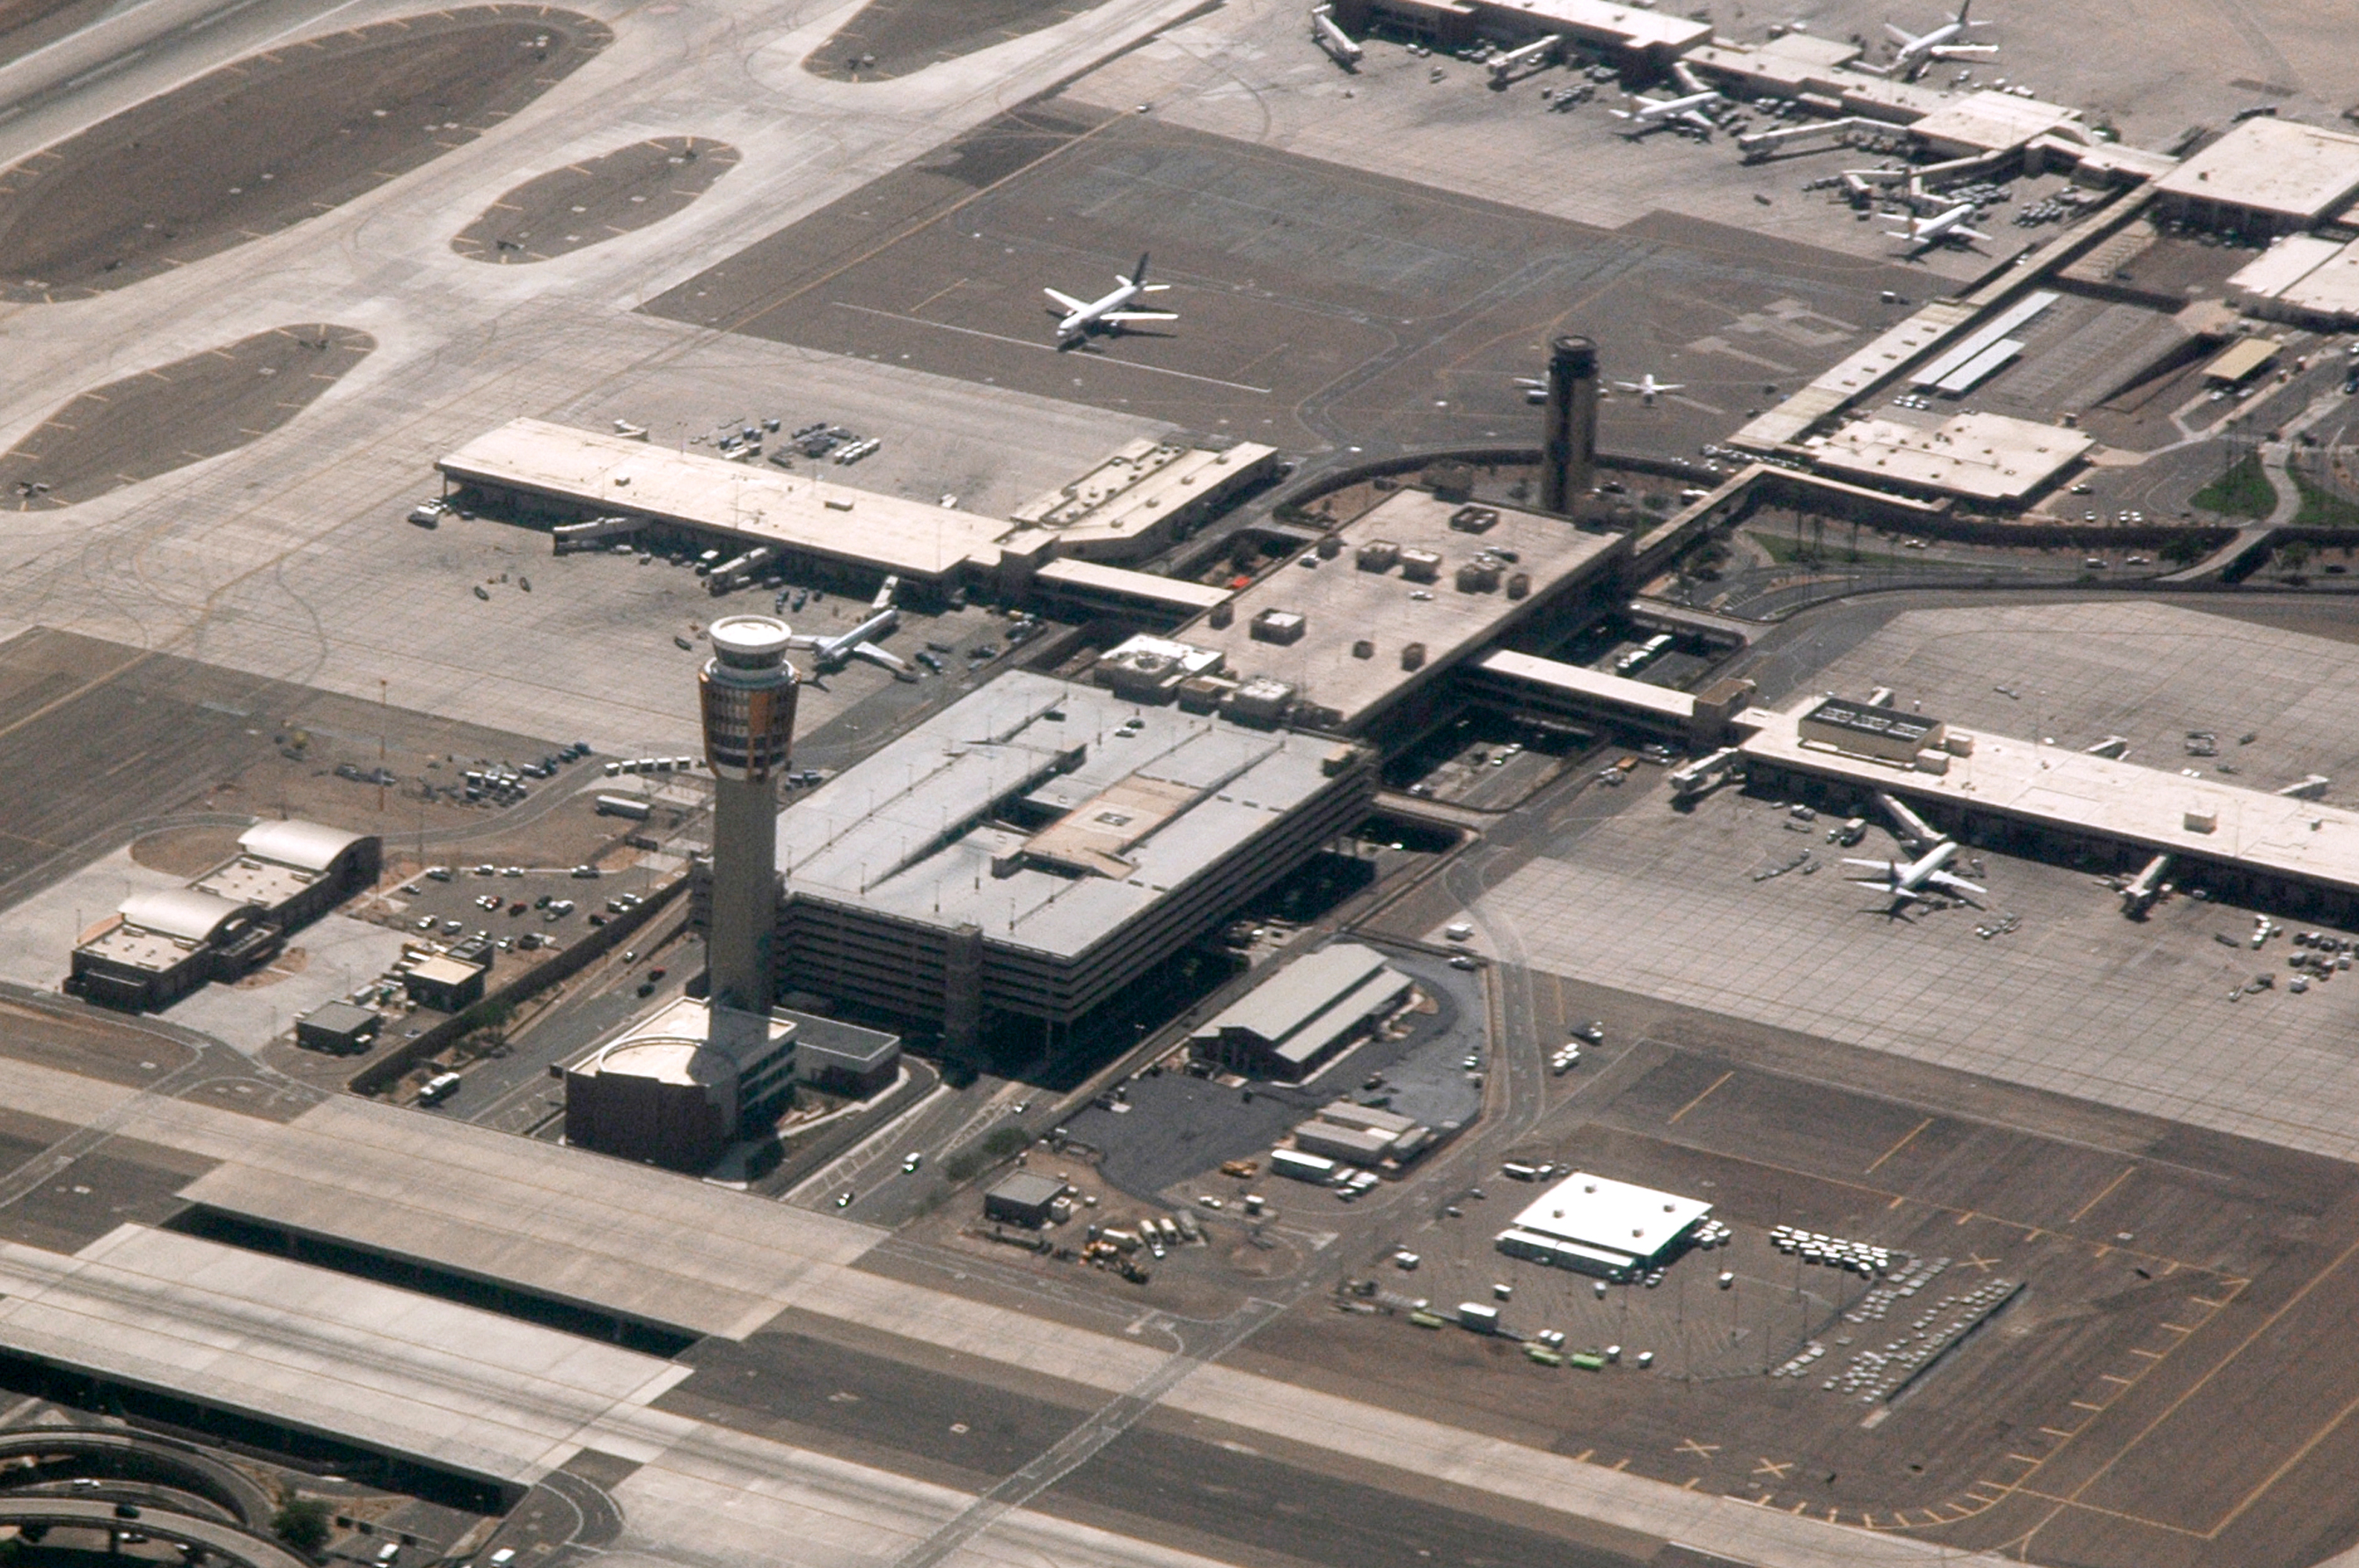 Phoenix Sky Harbor Control Tower